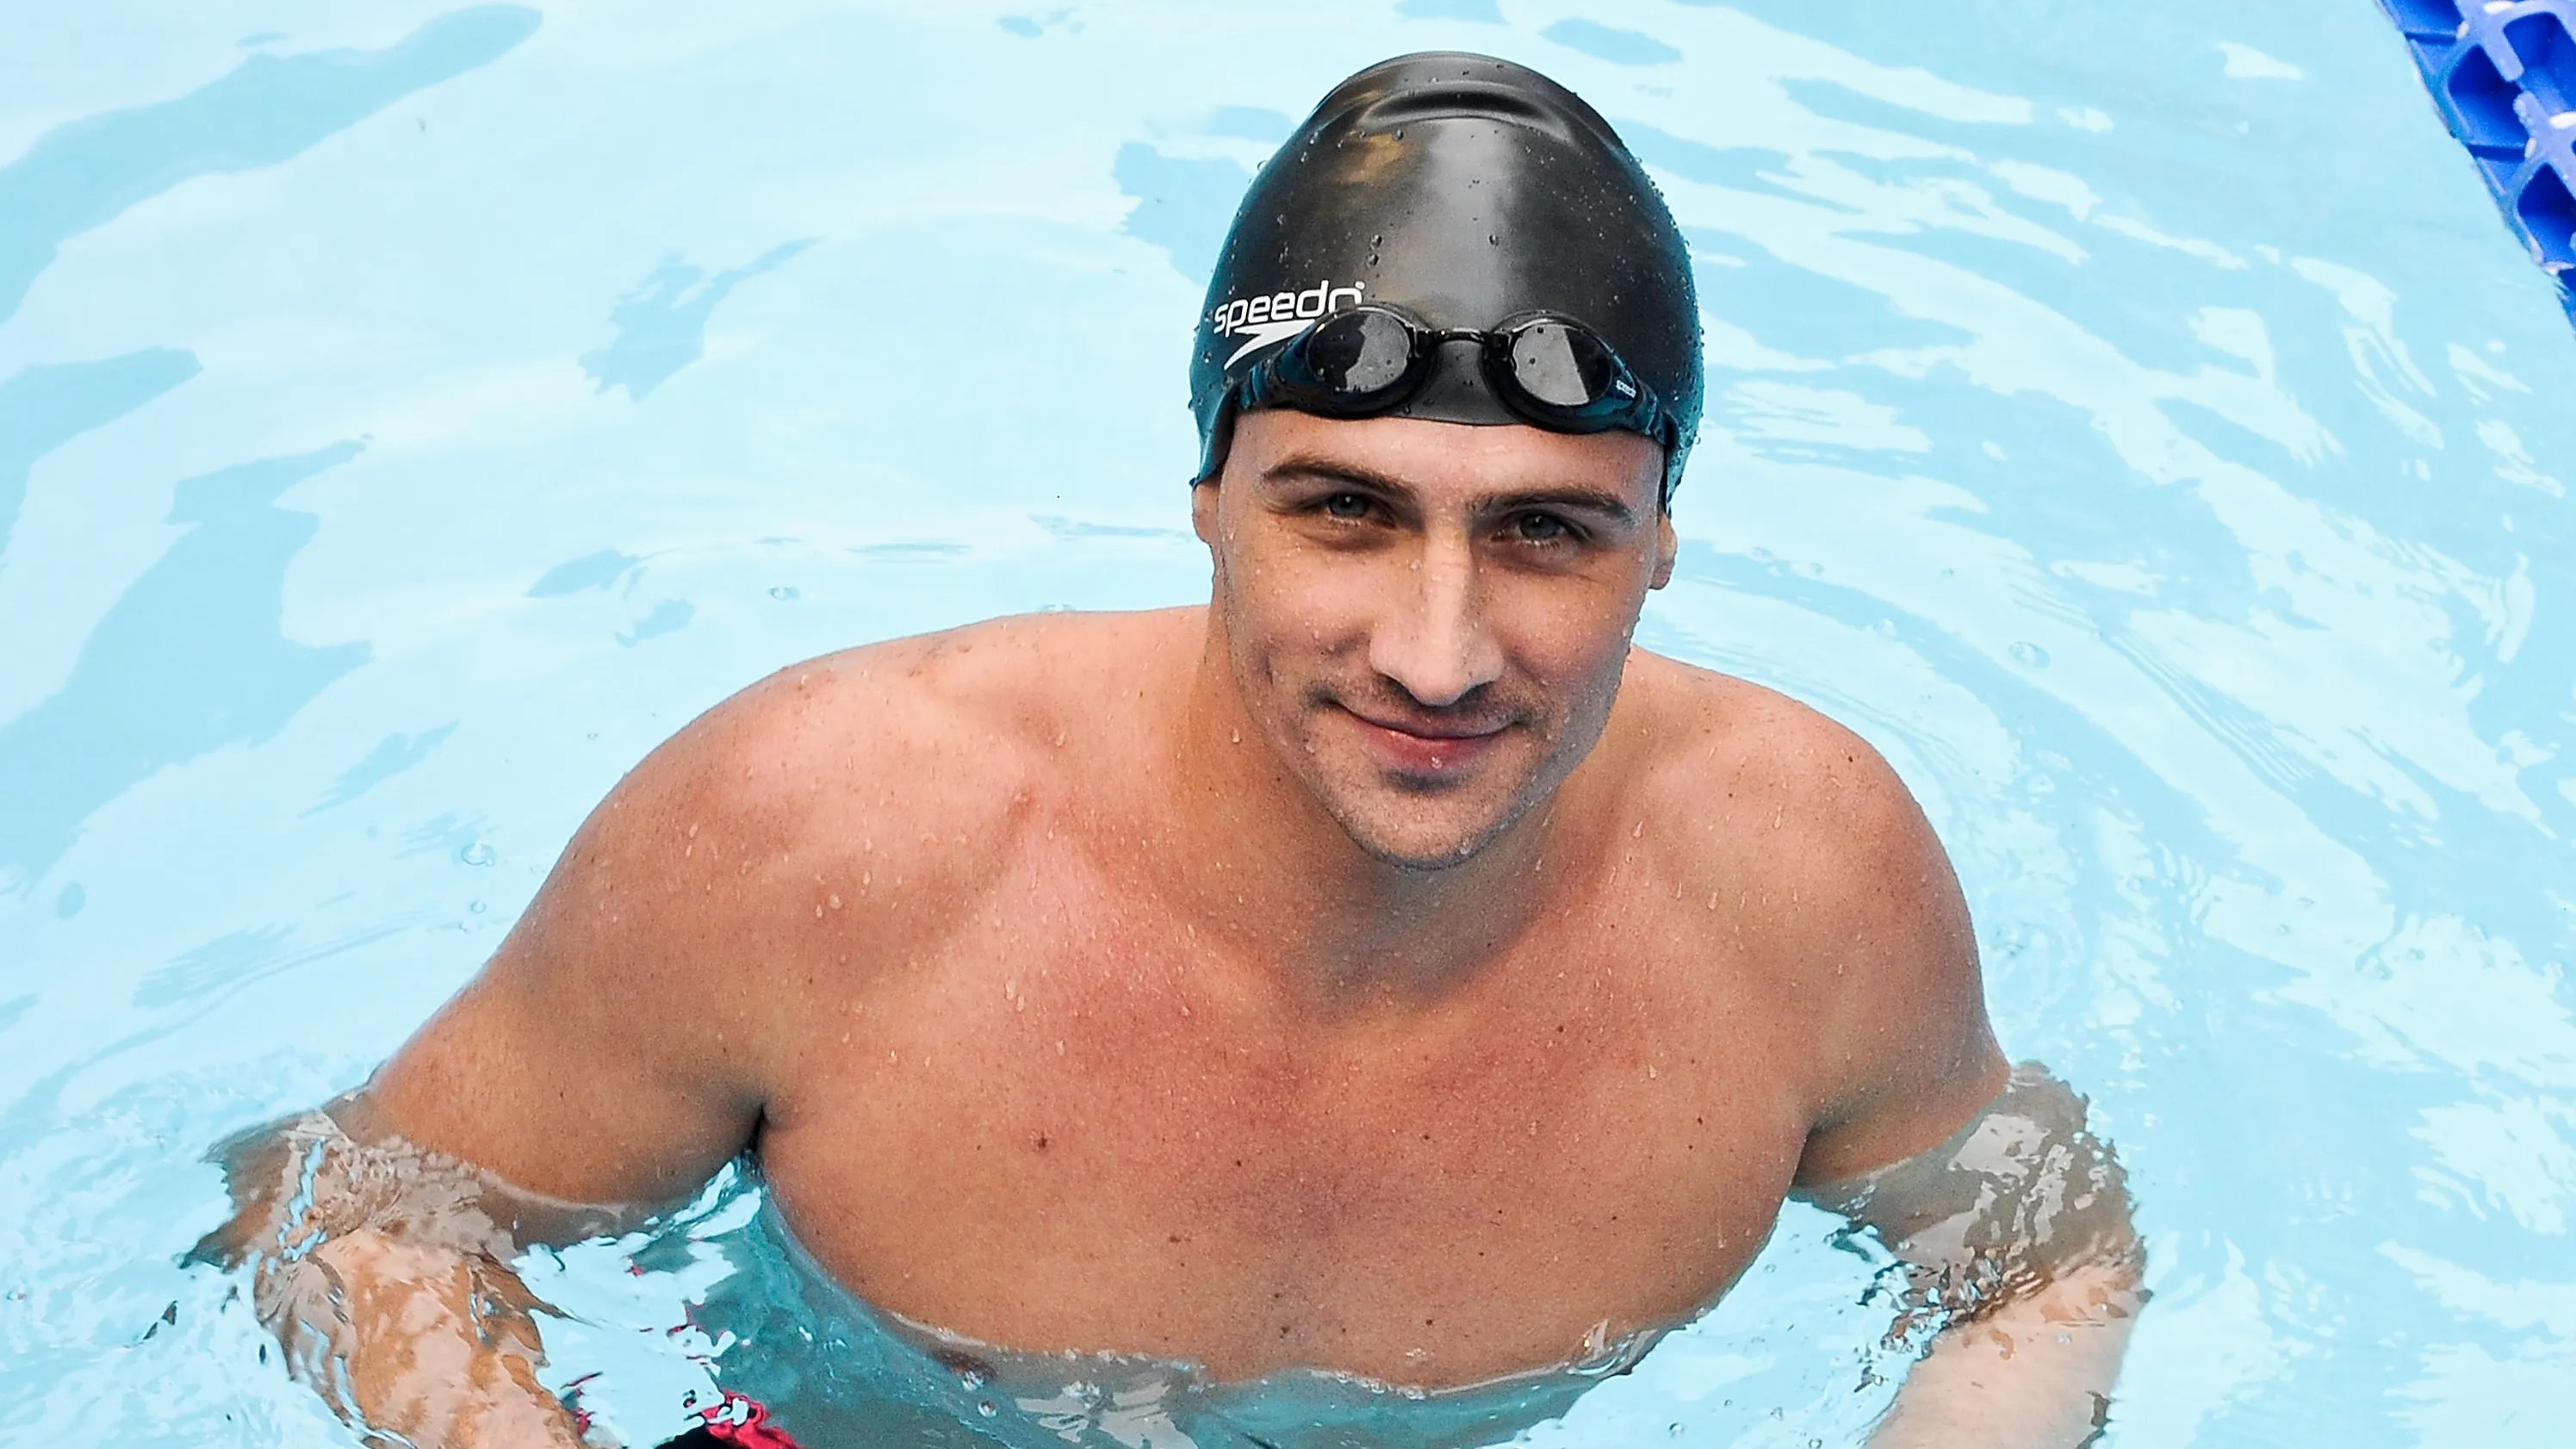 Ryan Lochte Just Unveiled A New OlympicsThemed Hair